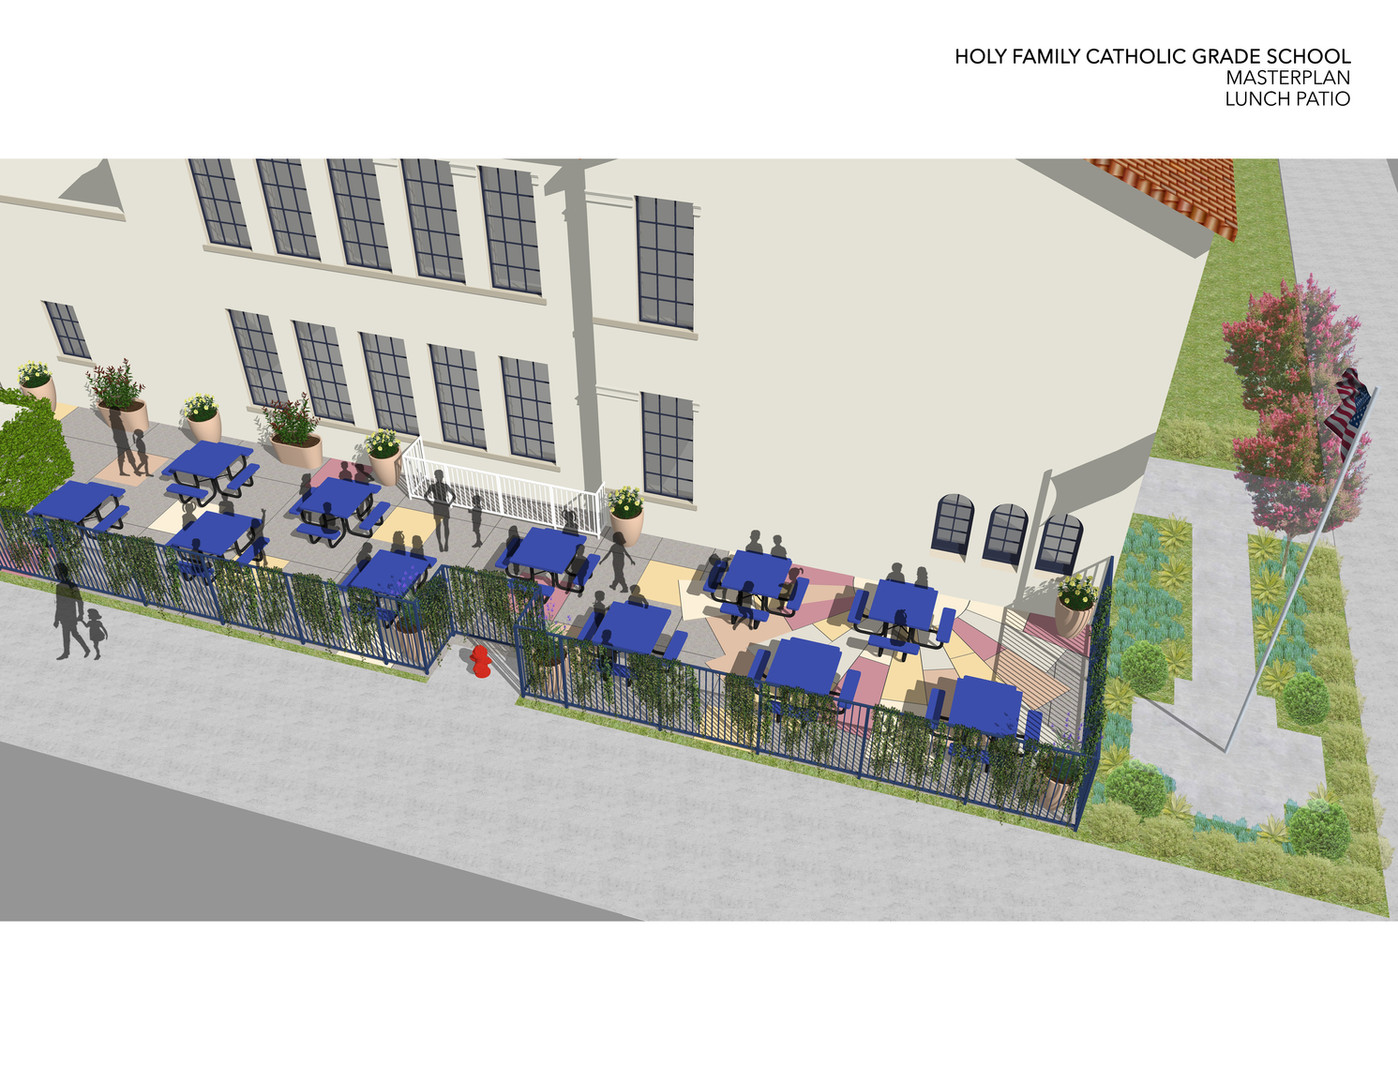 GS_Rendering_03_Lunch-Patio.jpg